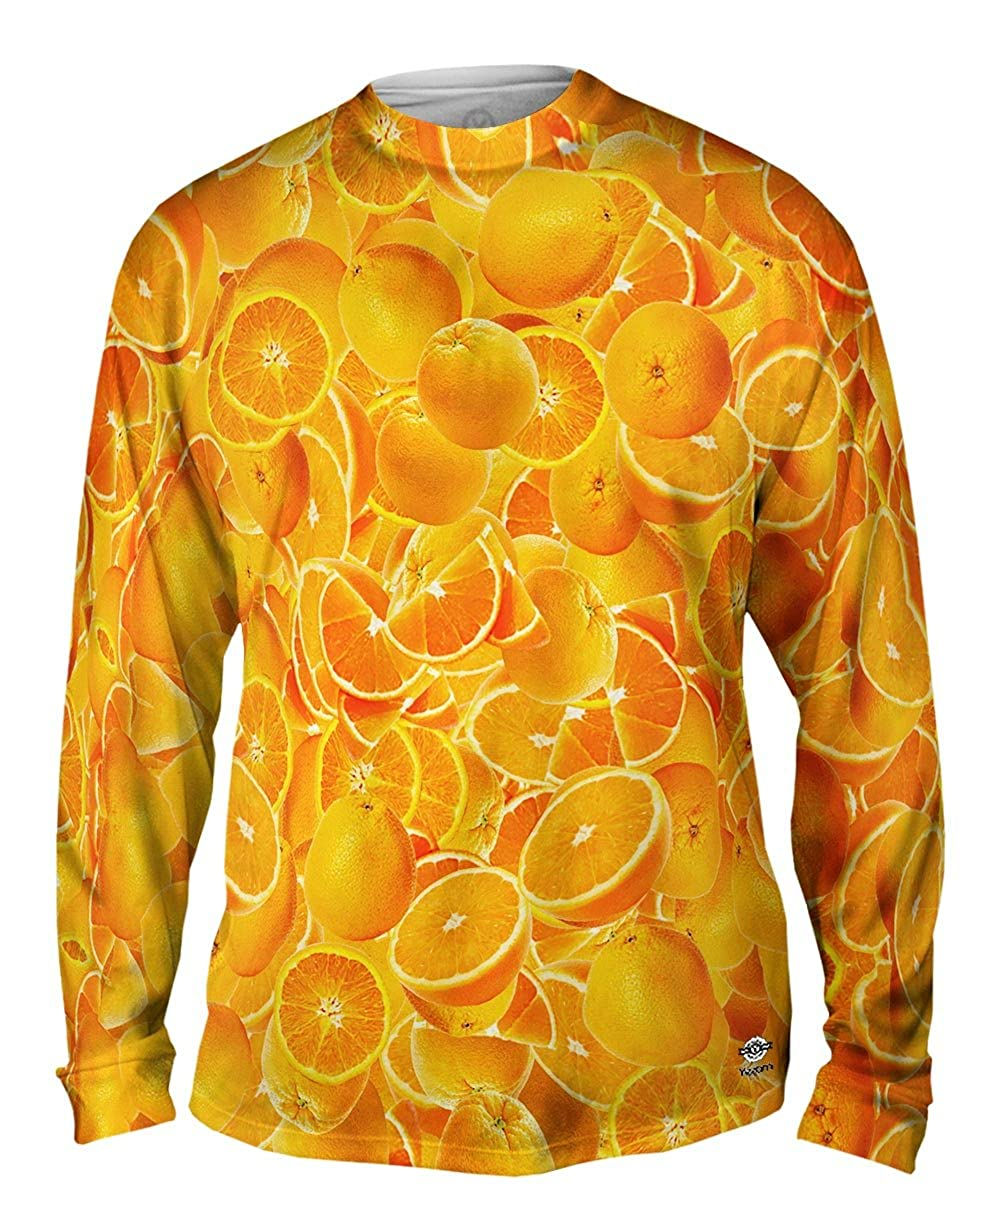 Yizzam Tshirt Oranges Jumbo Mens Long Sleeve